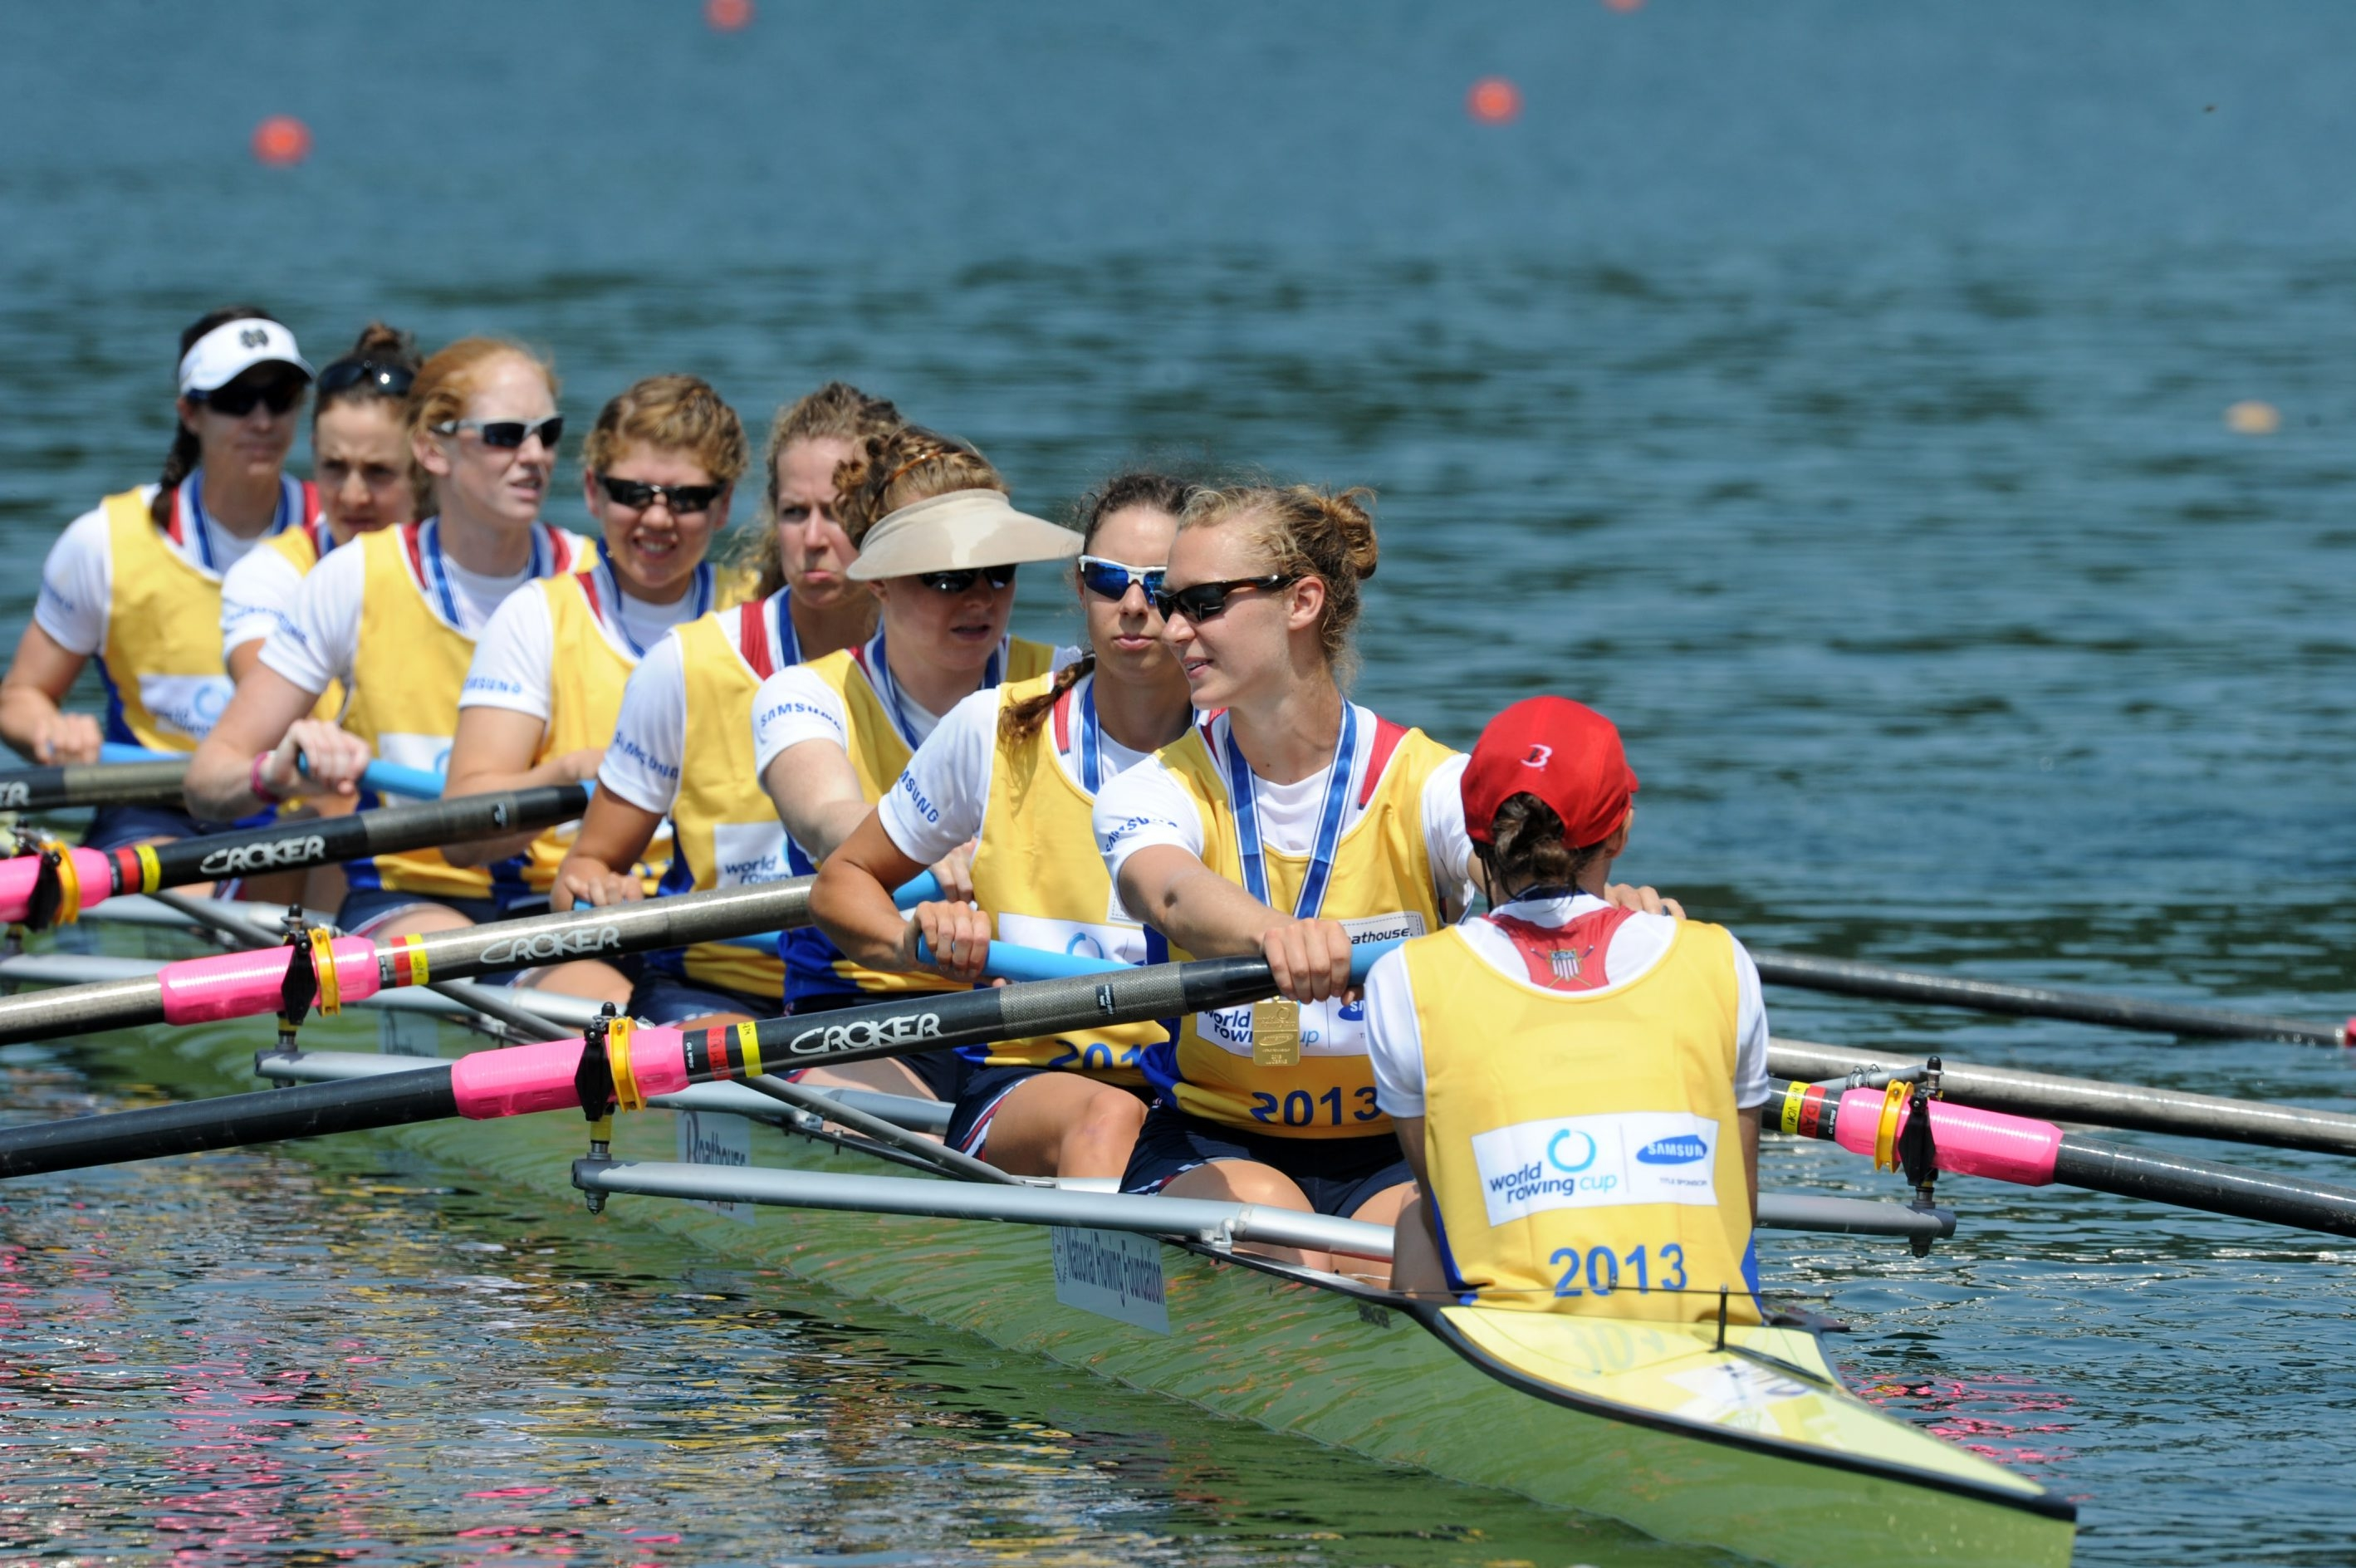 Emily Regan of Buffalo, third from the left, rowed on this U.S. eight that won the World Championship in 2013.